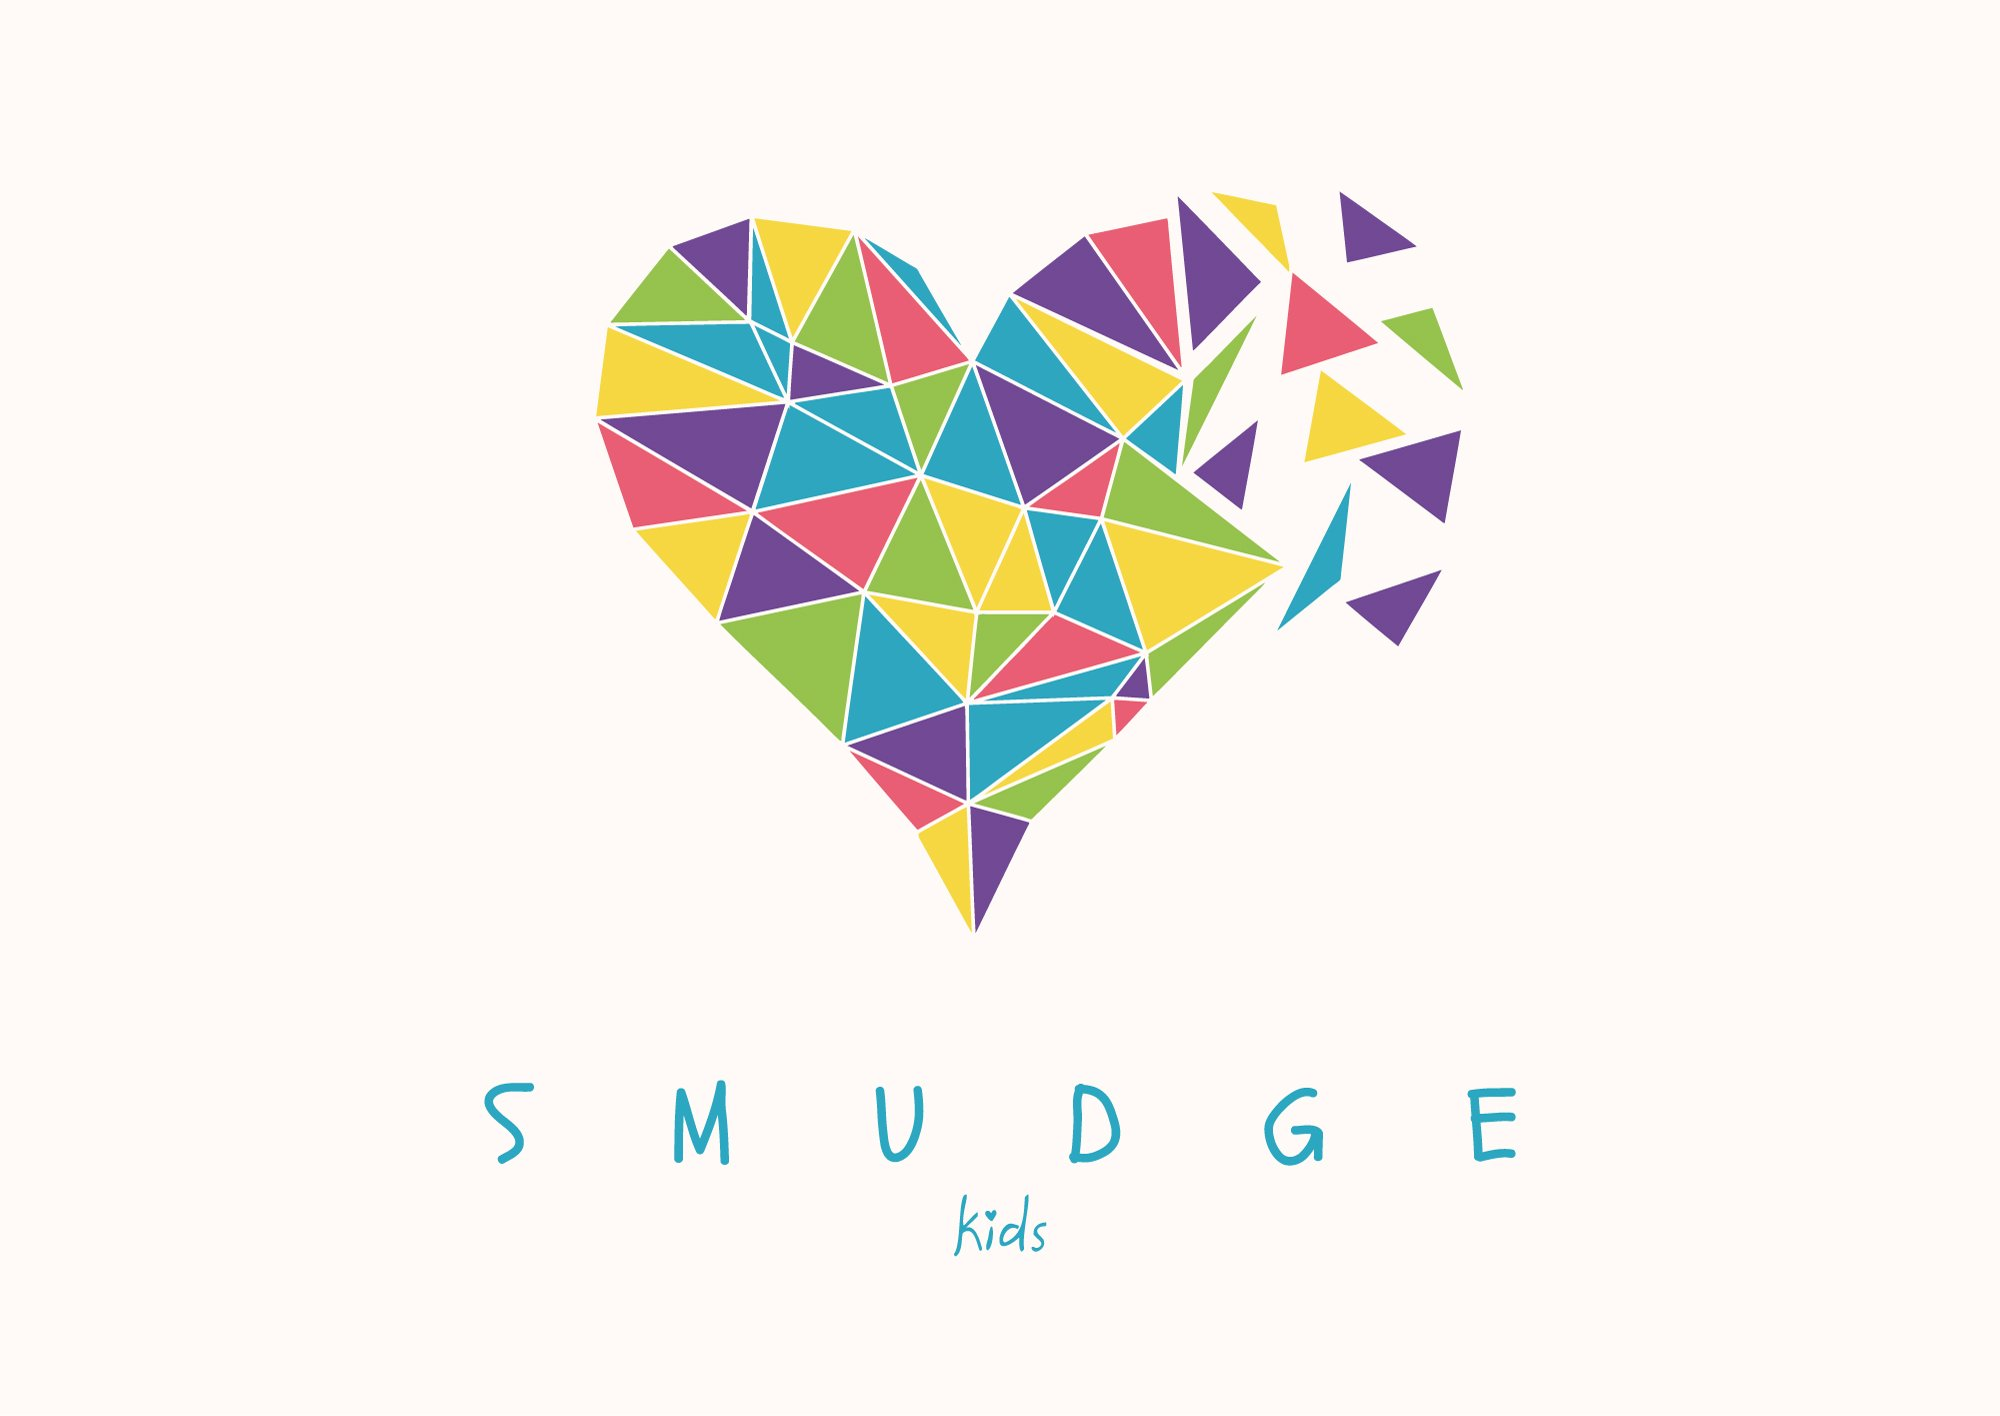 smudge-kids-logo